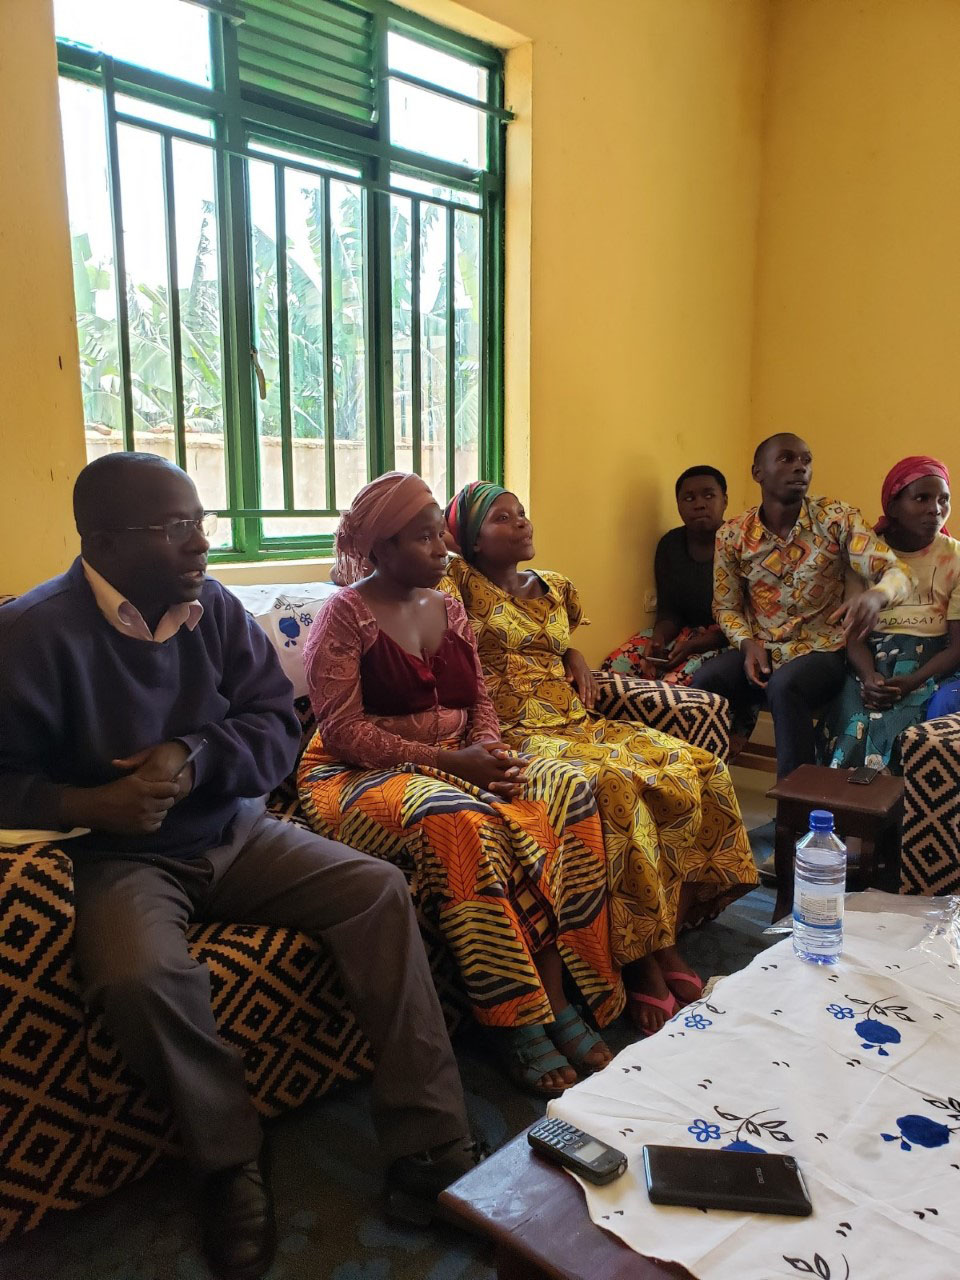 Our meeting with some of the members from the savings program and Mr. Innocent Semaringa, coordinator for ERP's CDP (sitting on the far left).